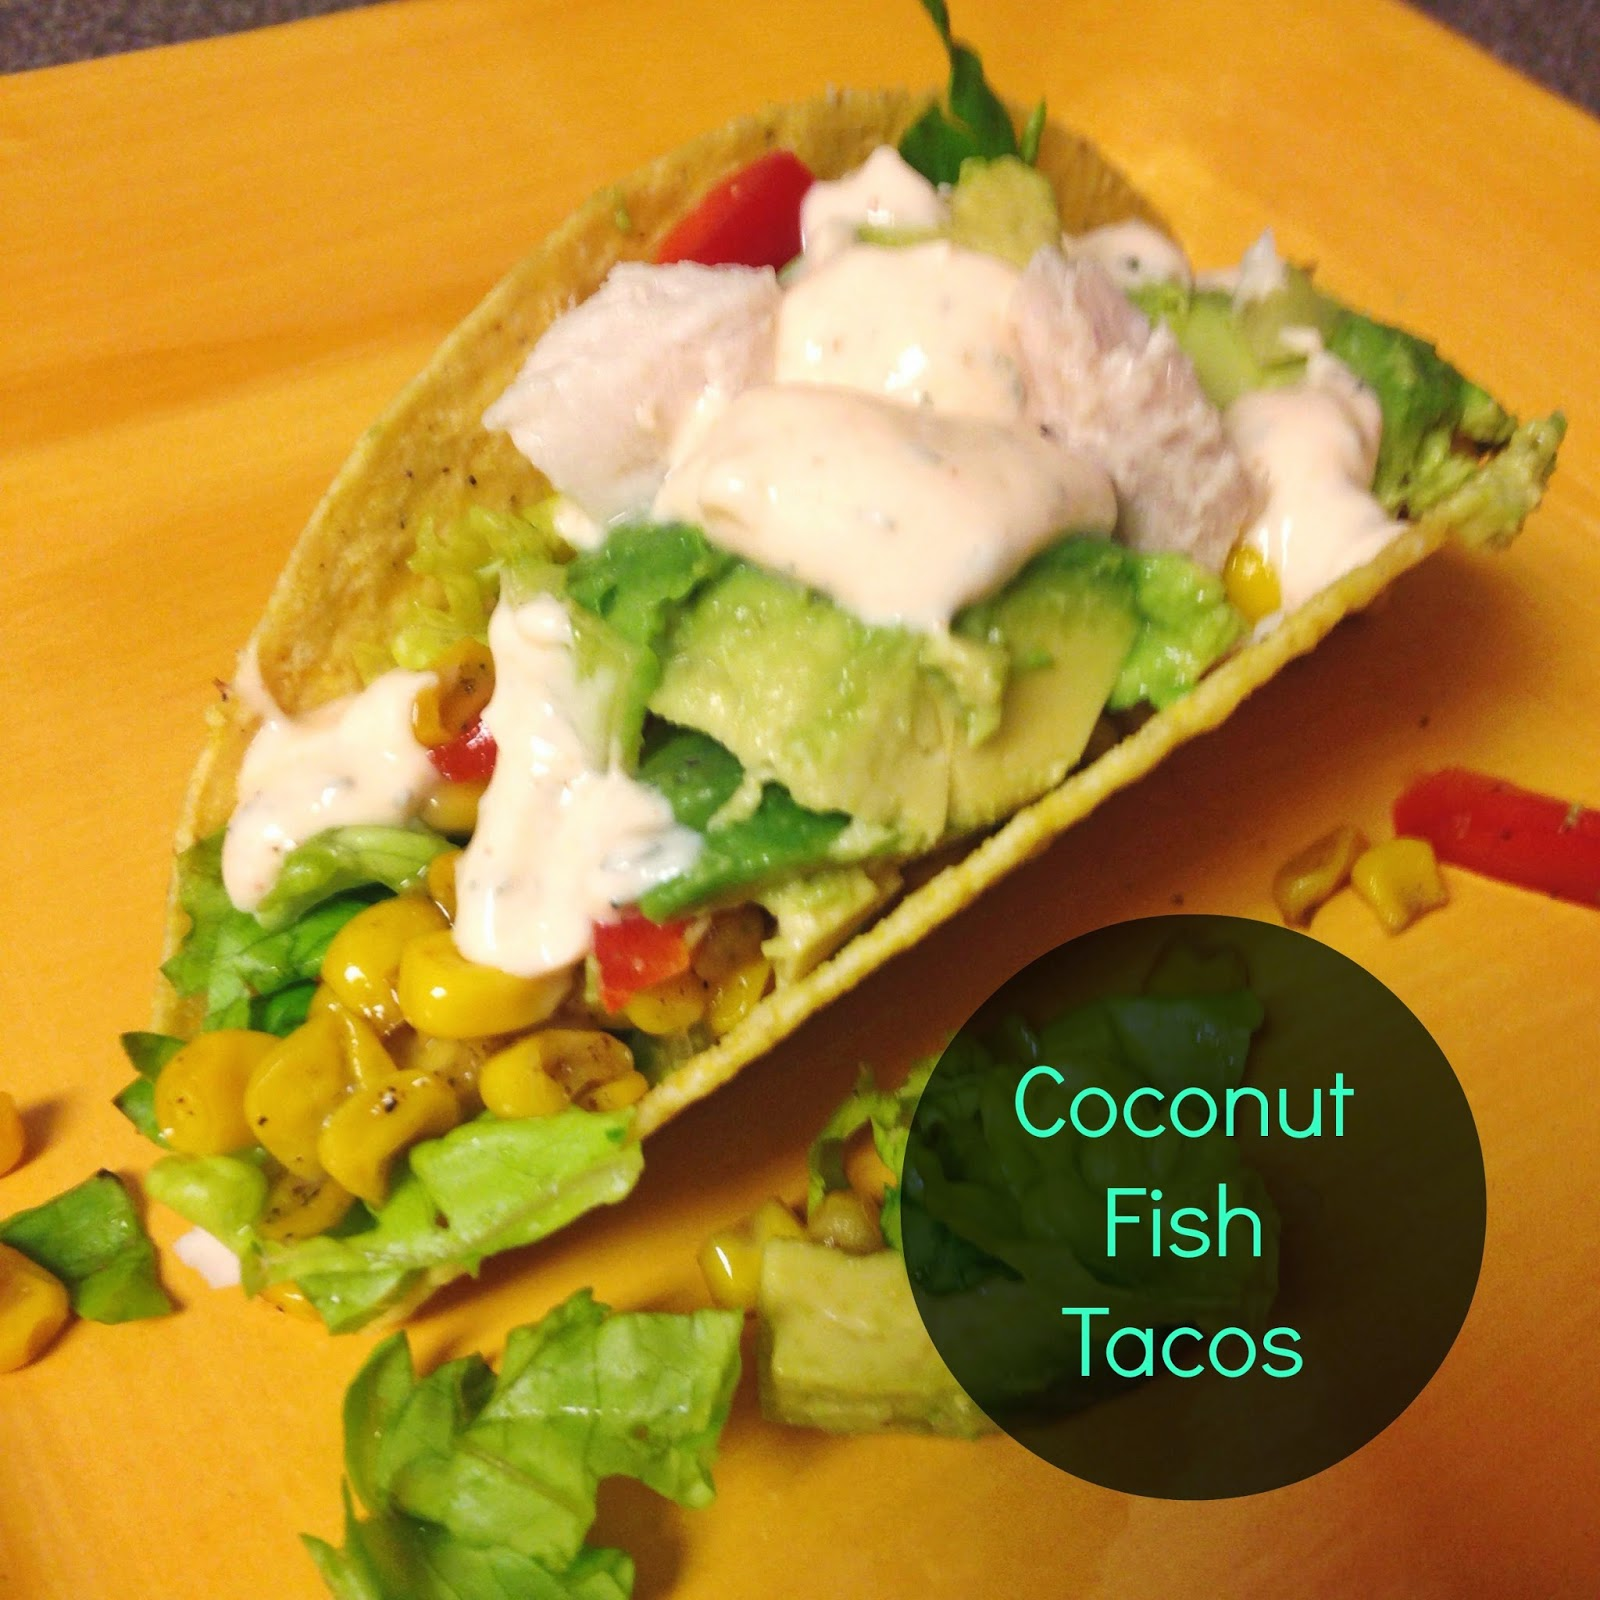 Coconut Fish Tacos